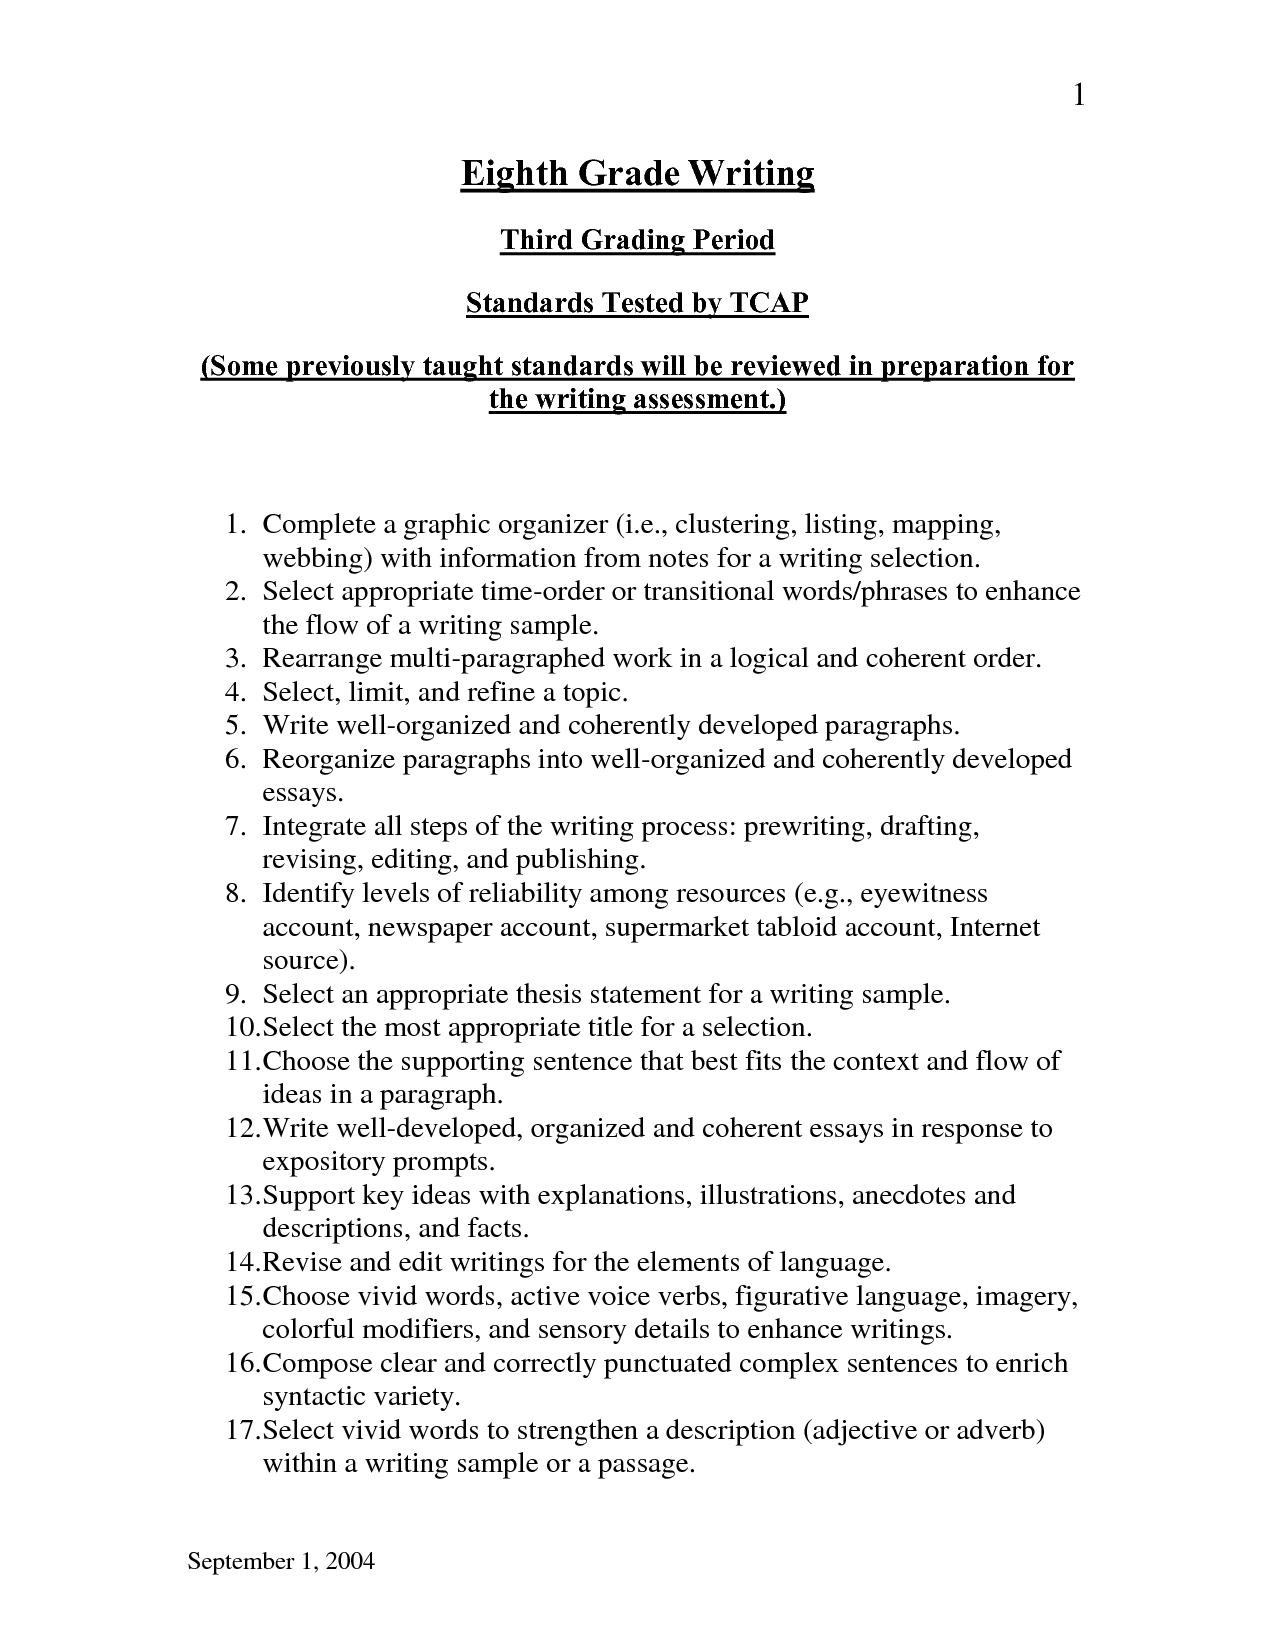 001 Expository Essay Writing Prompts For High School 1088622 Topics Awesome 4th Grade Prompt 7th Full